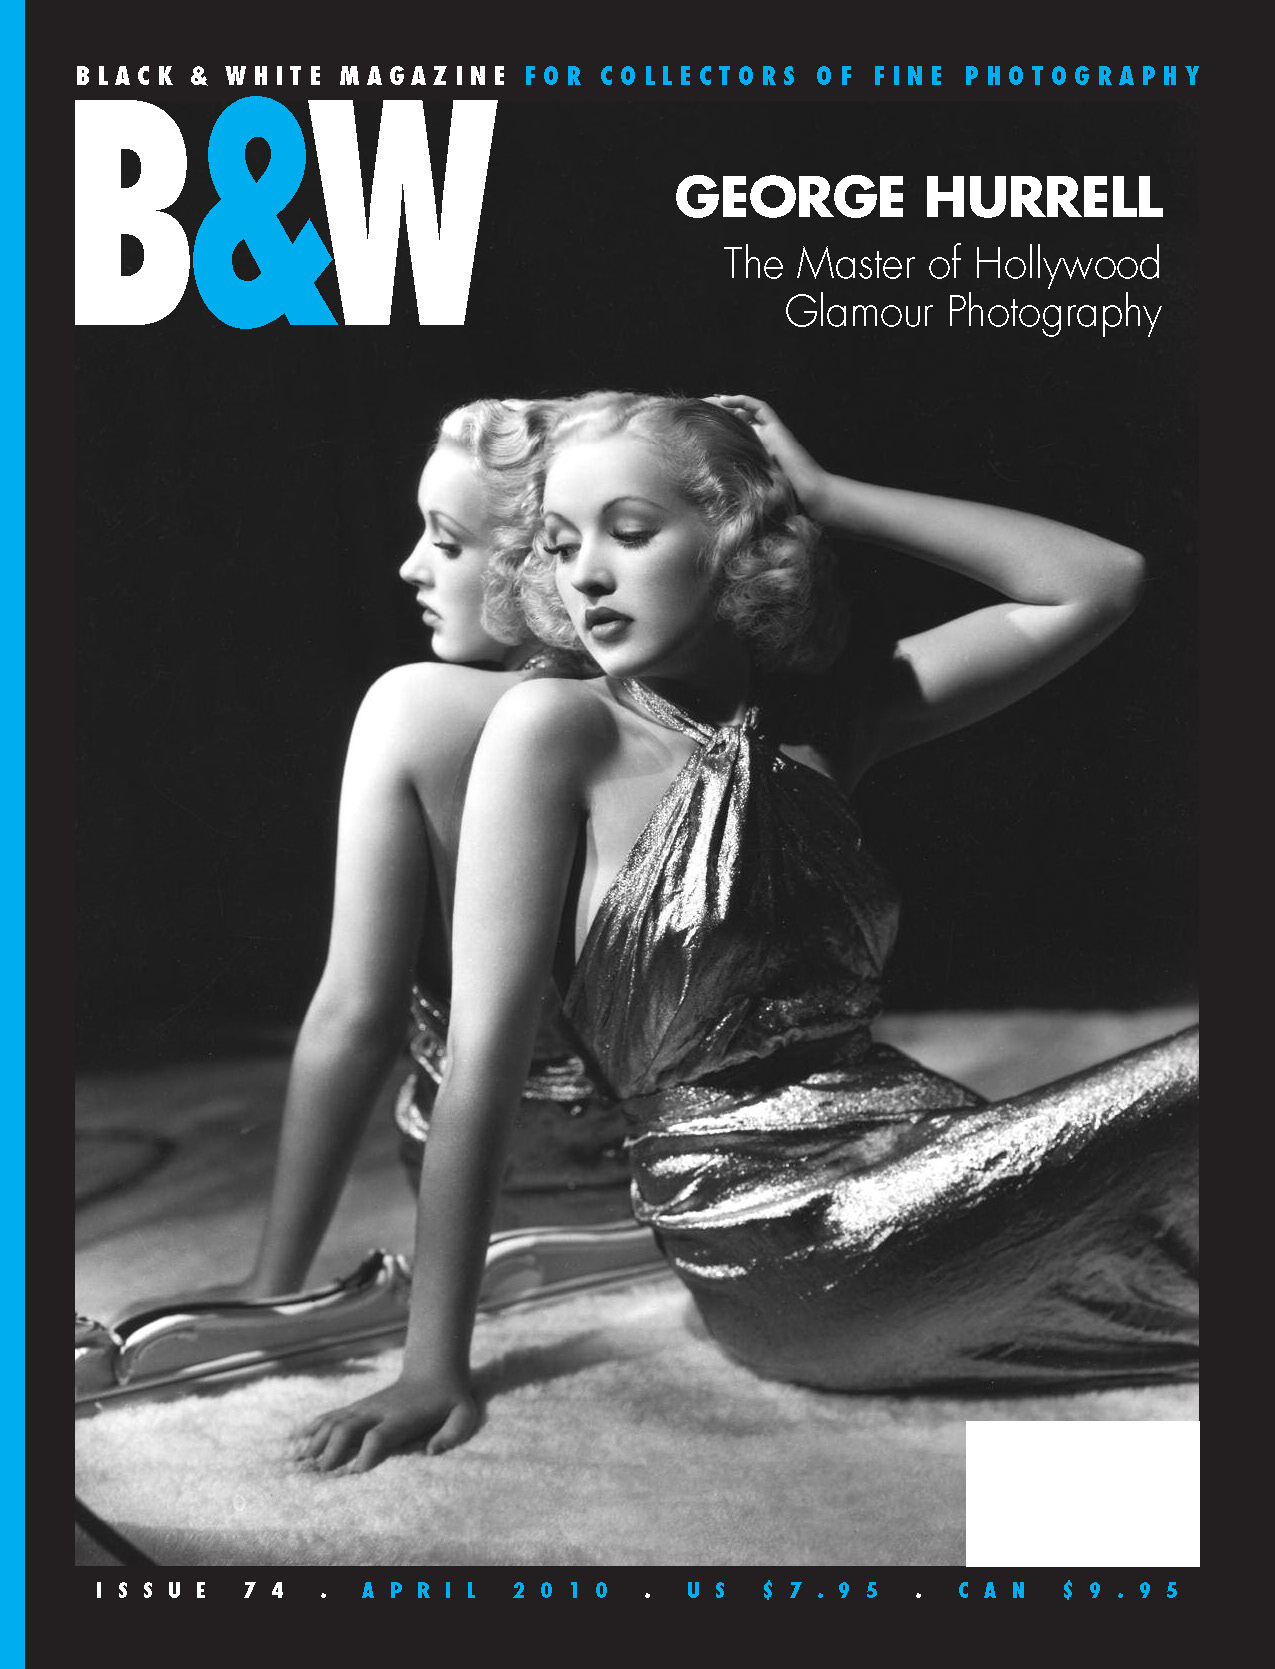 B&W cover george hurrel the master of hollywood glamour. blonde women leaning against glass with nice dress in black and white